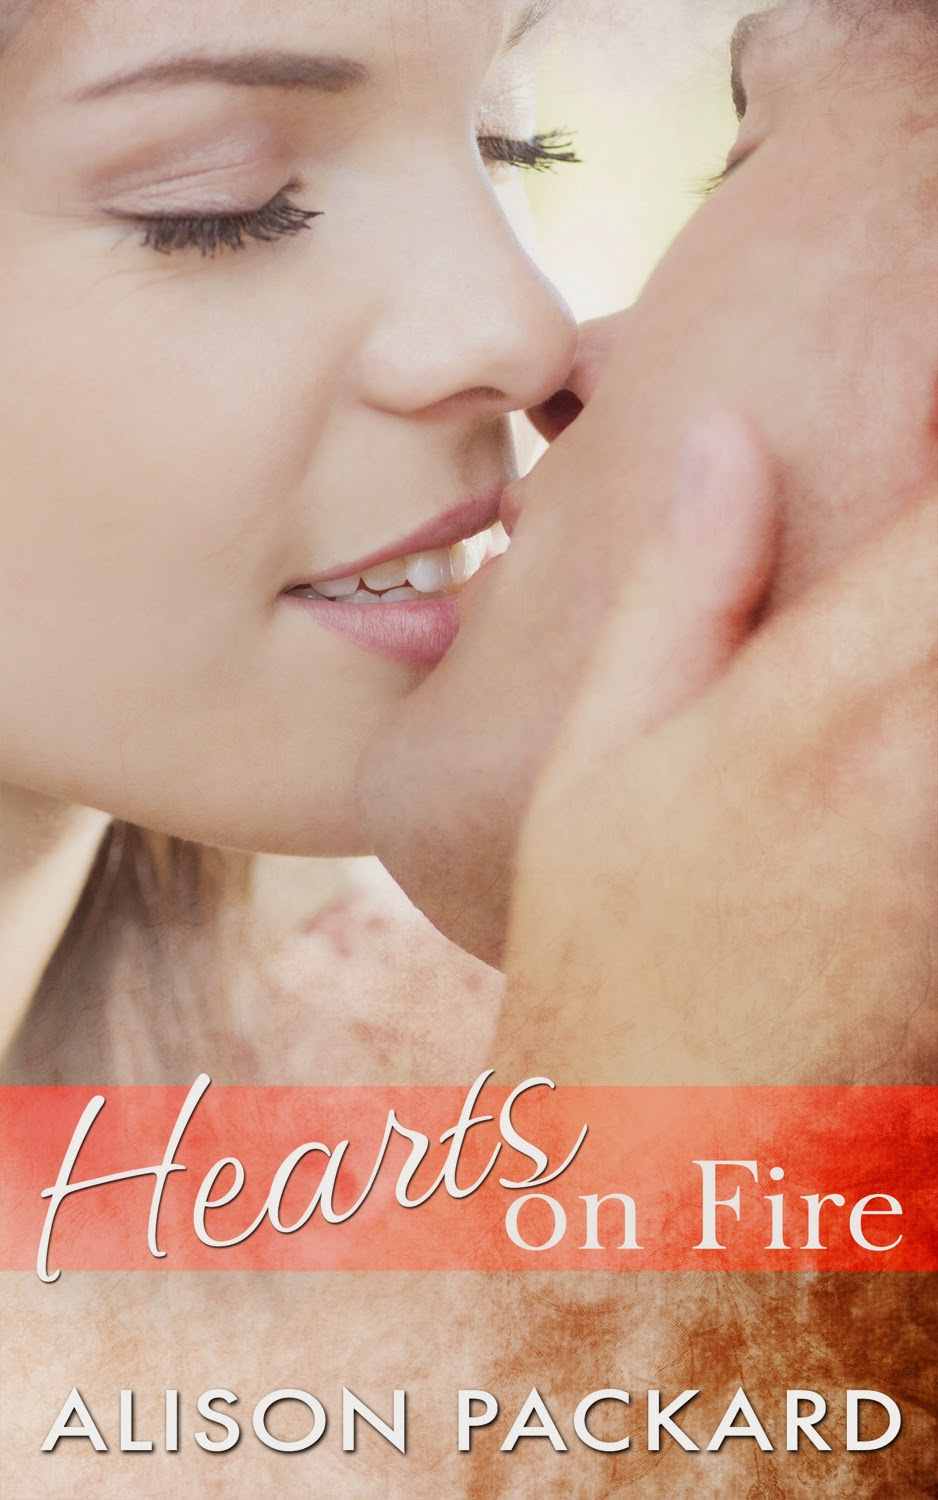 Book excerpt for contemporary romance novel Hearts on Fire by Alison Packard